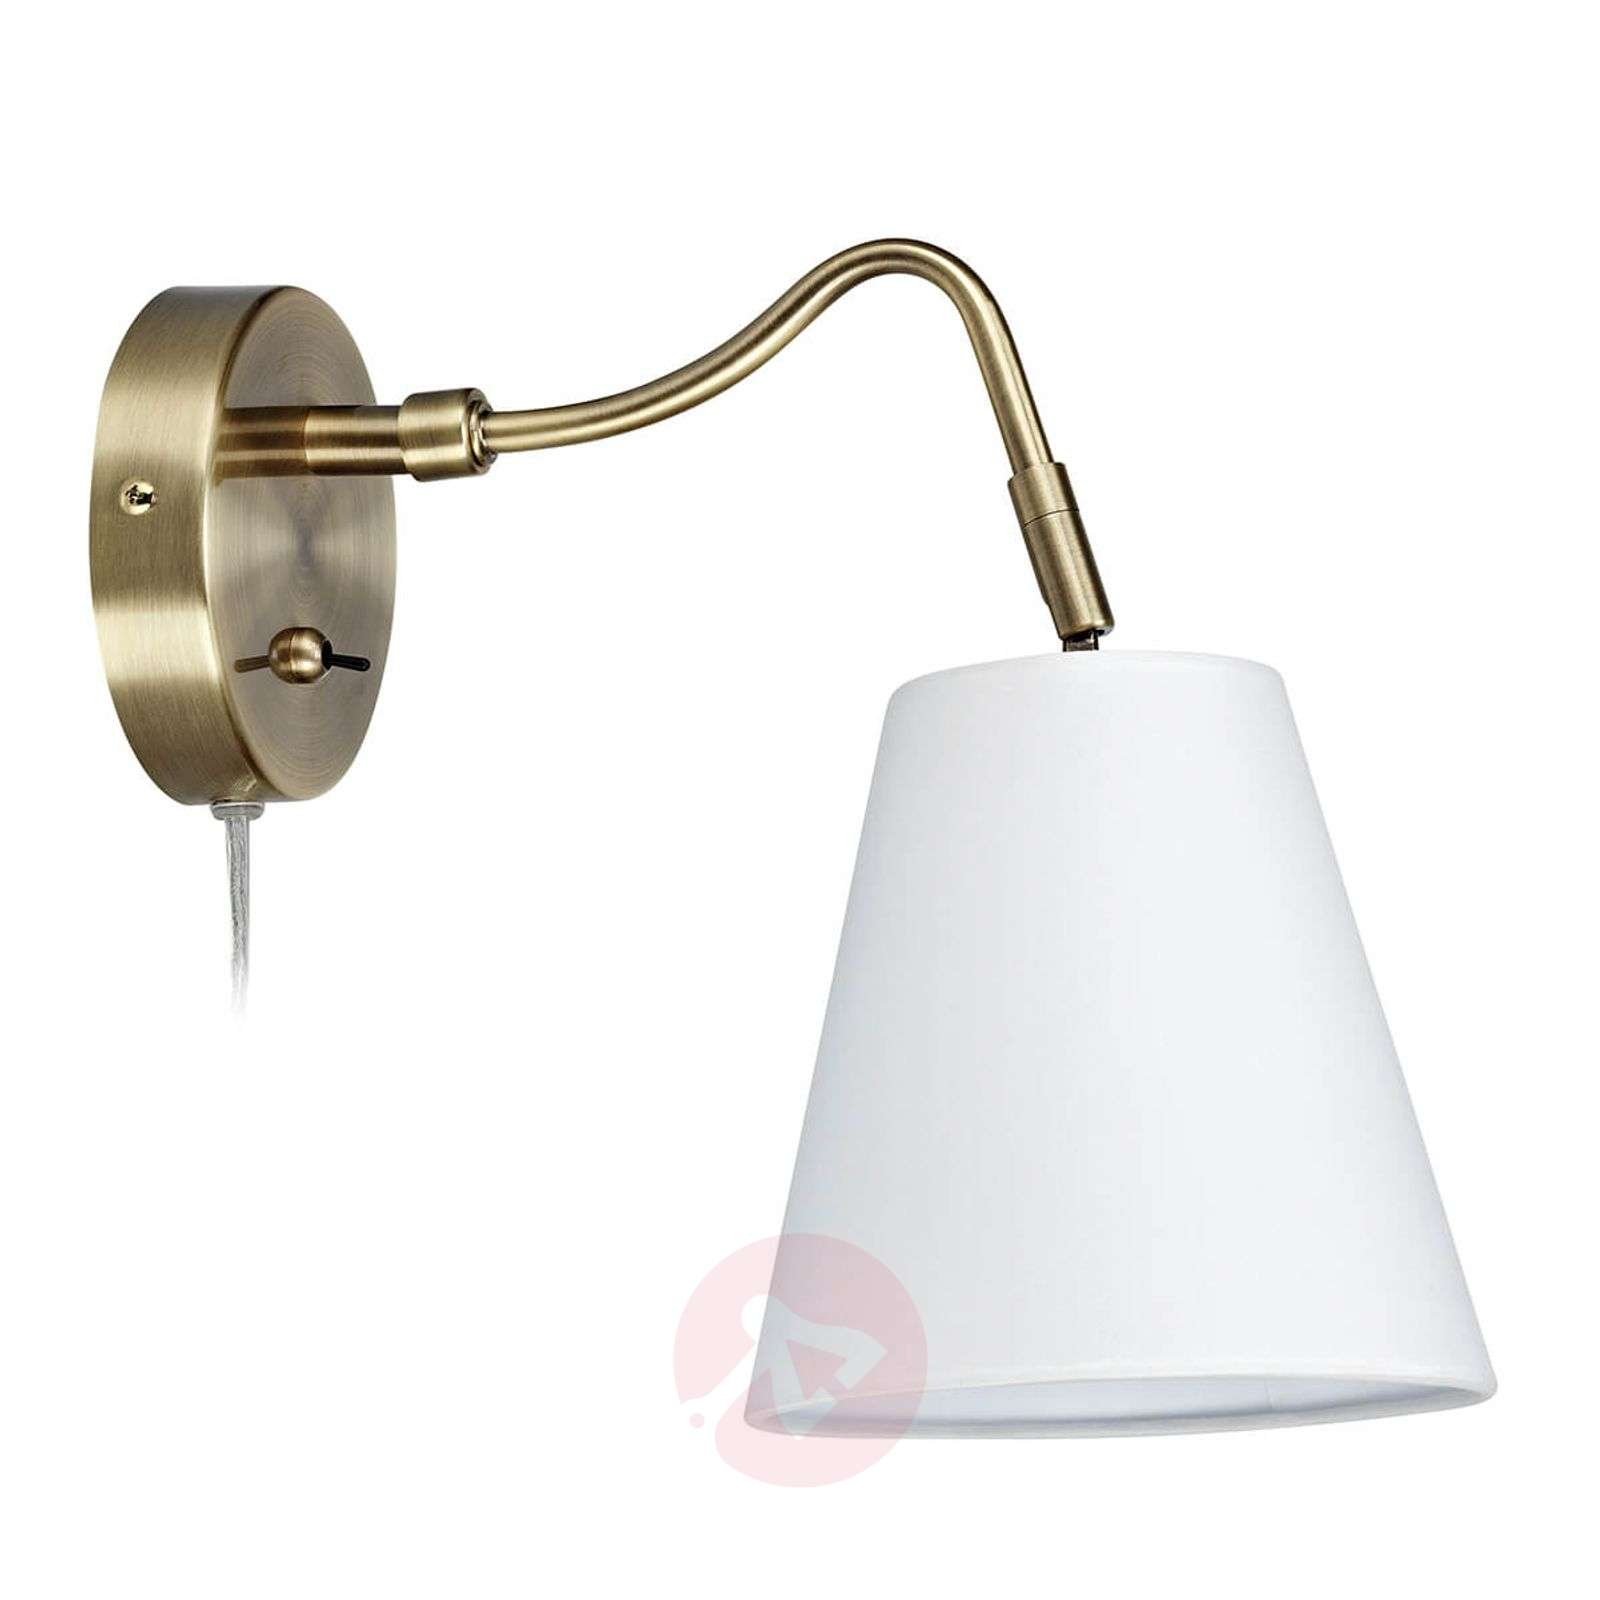 Tindra fabric wall light in antique brass look-6506160-01